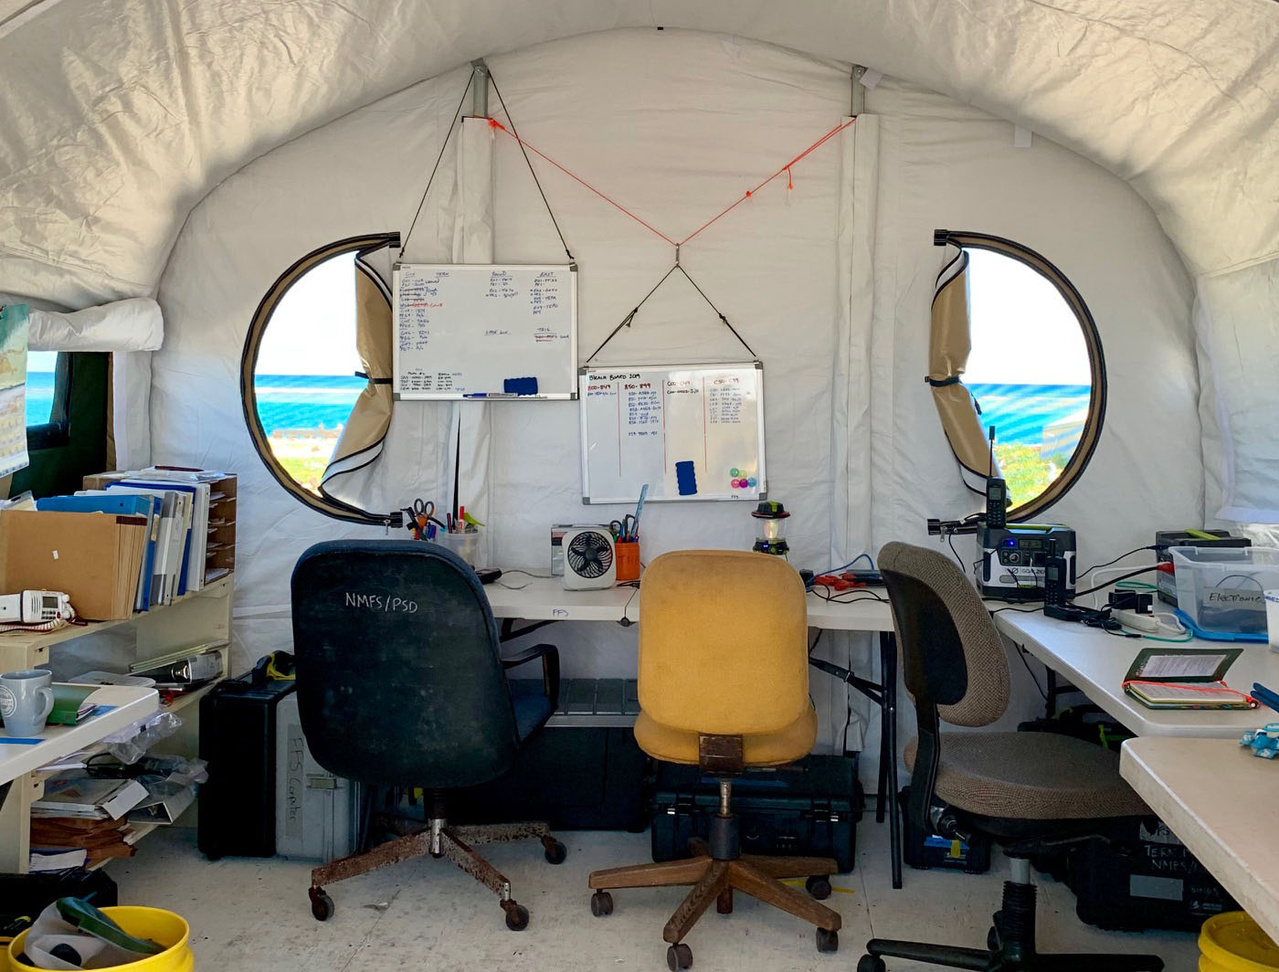 The view from inside a tent at French Frigate Shoals during the 2019 field season.